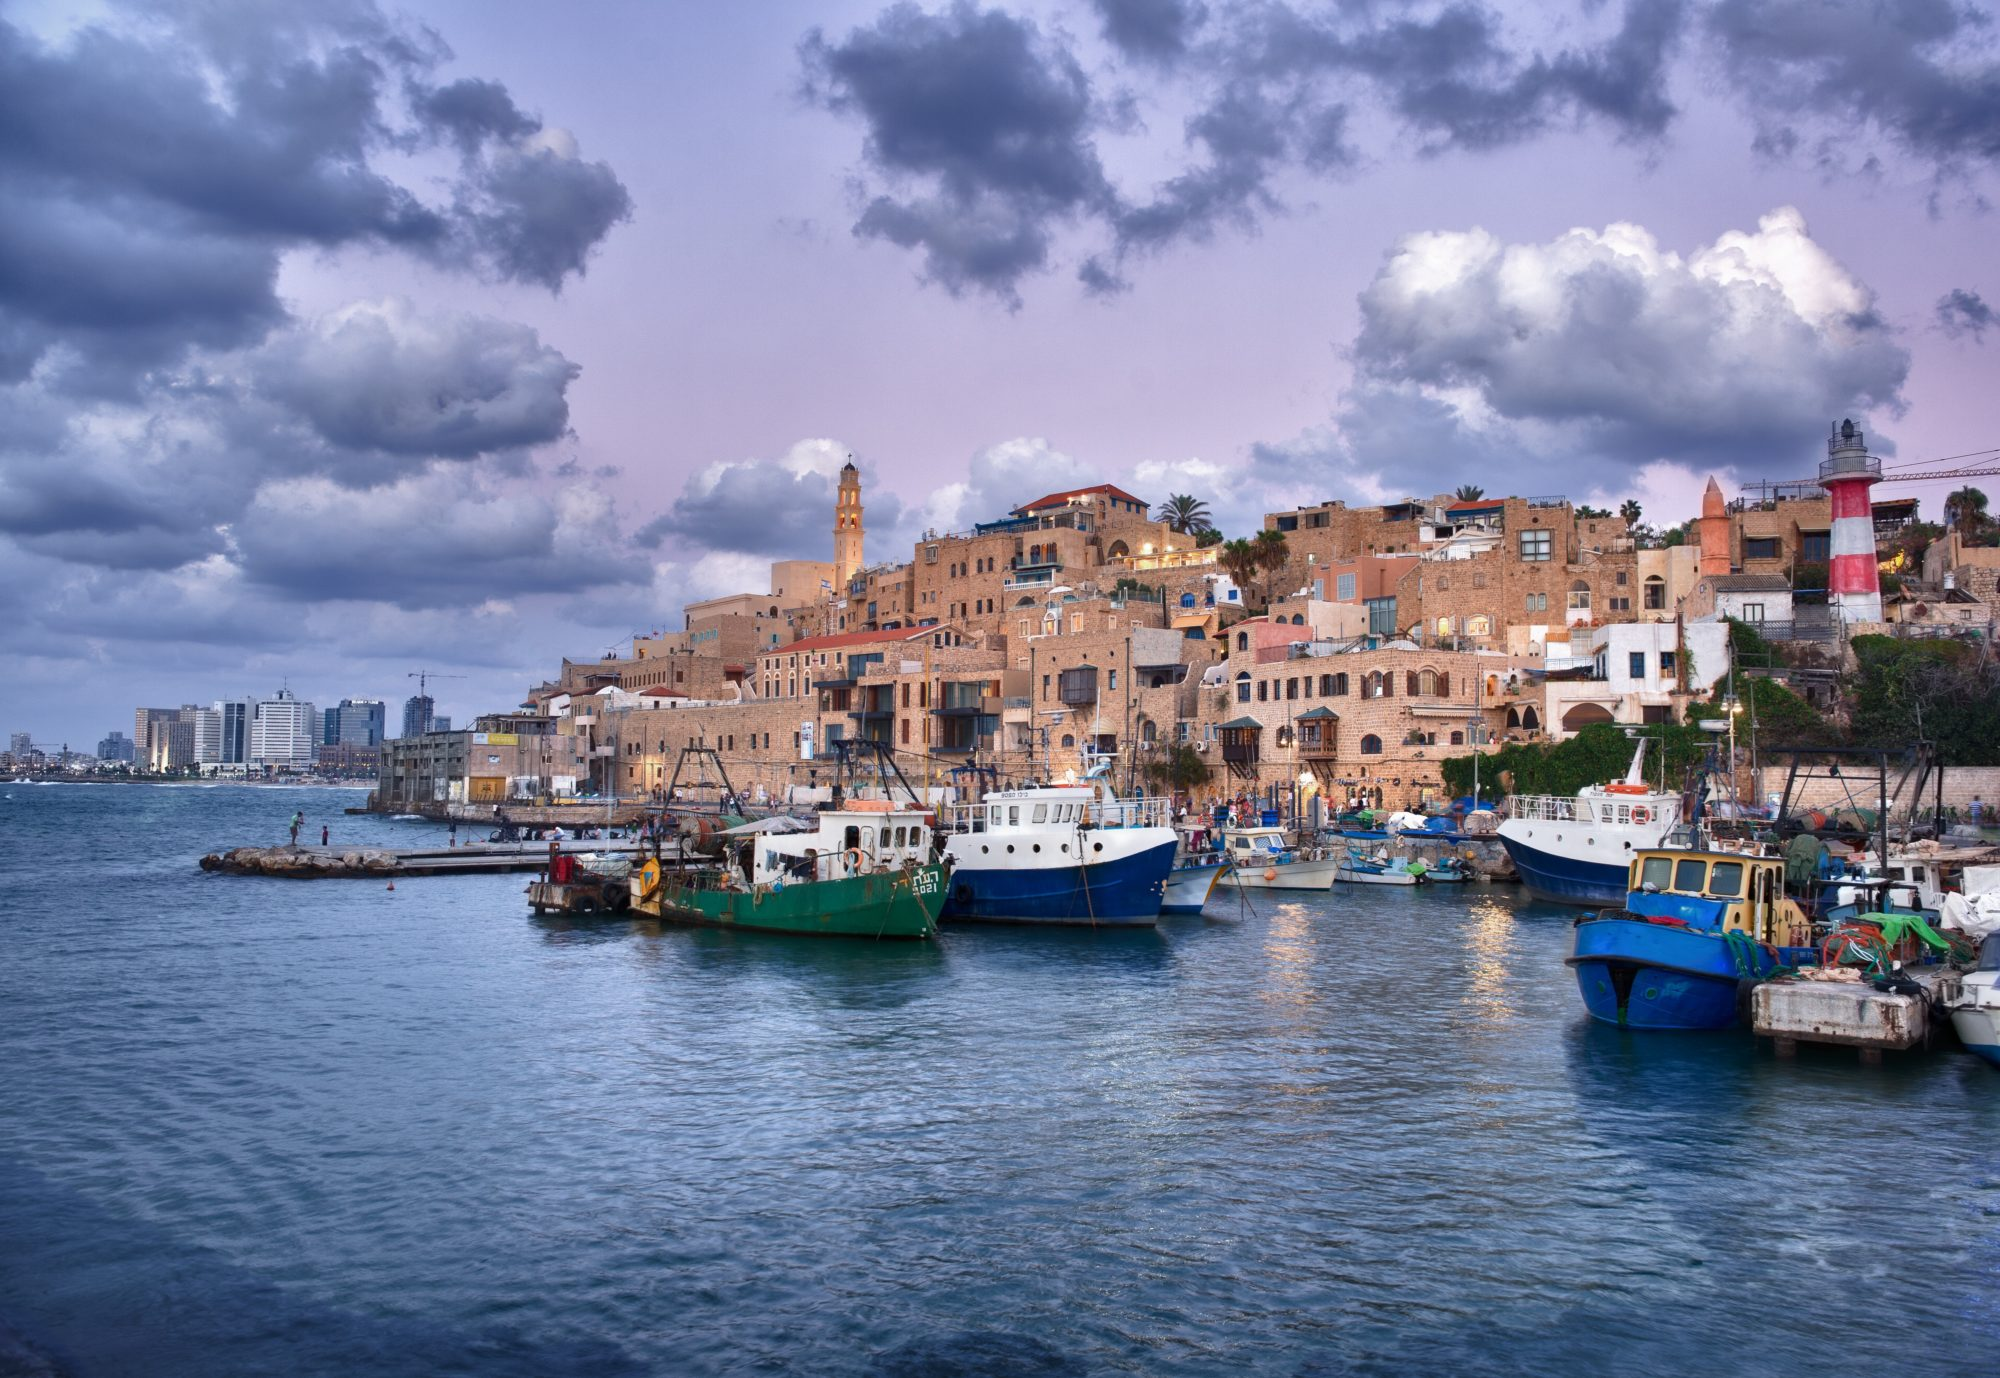 Jaffa - The old port